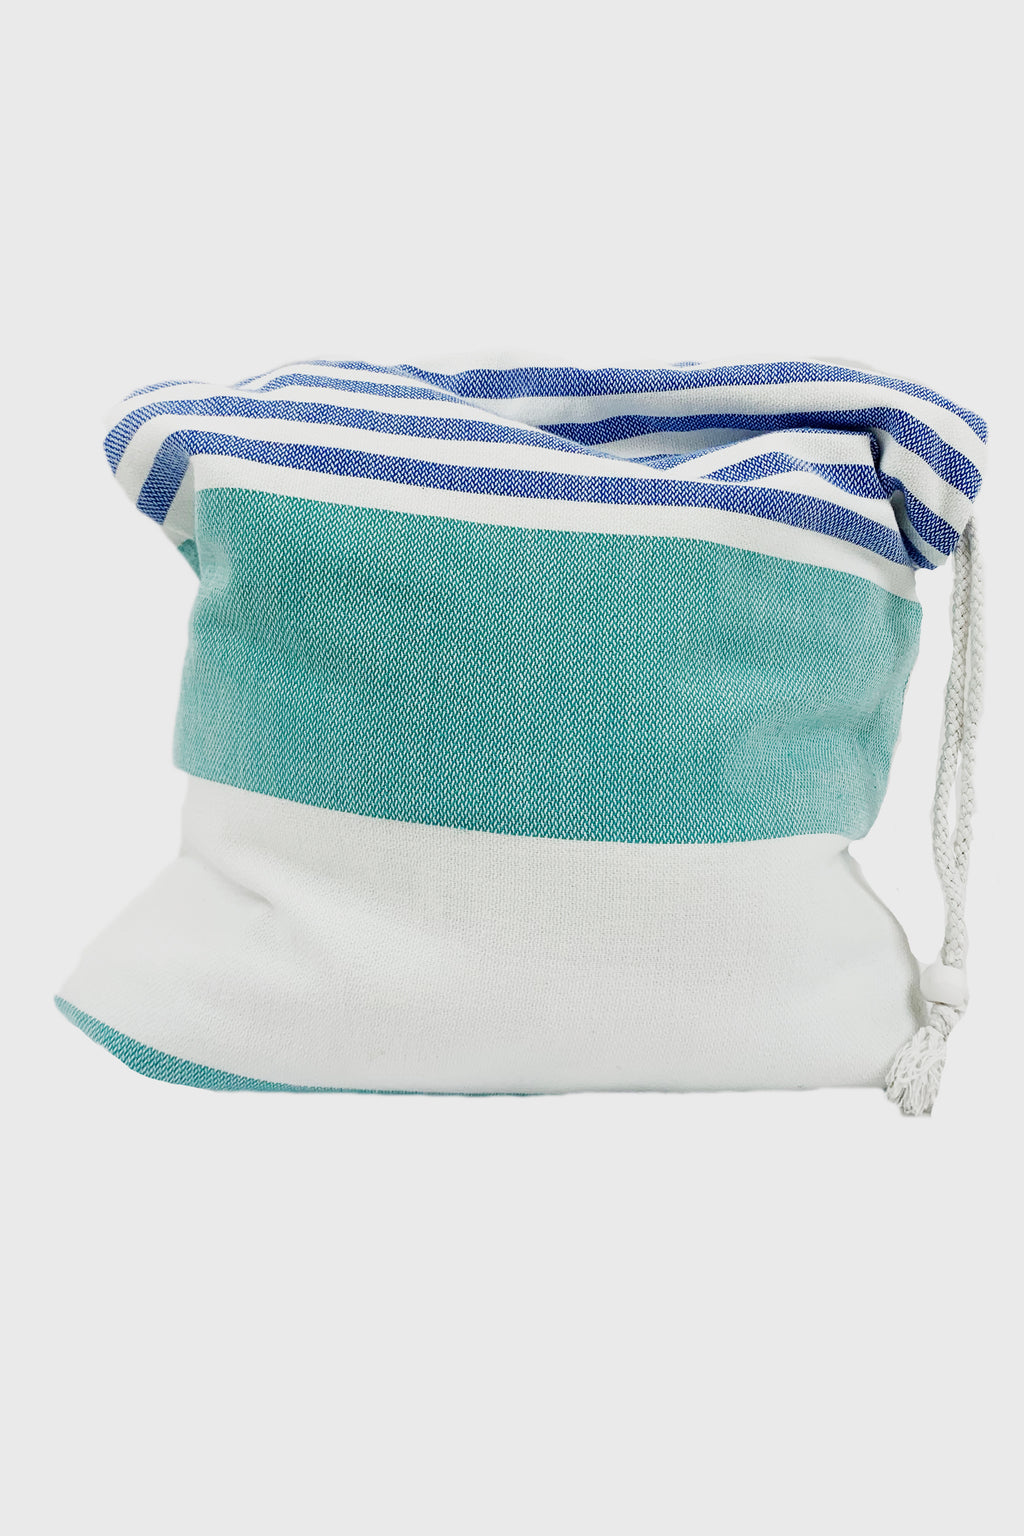 2-in-1 Cotton Bag and Blanket (QVSDHS19056)-BEACHBAGS-BaySky